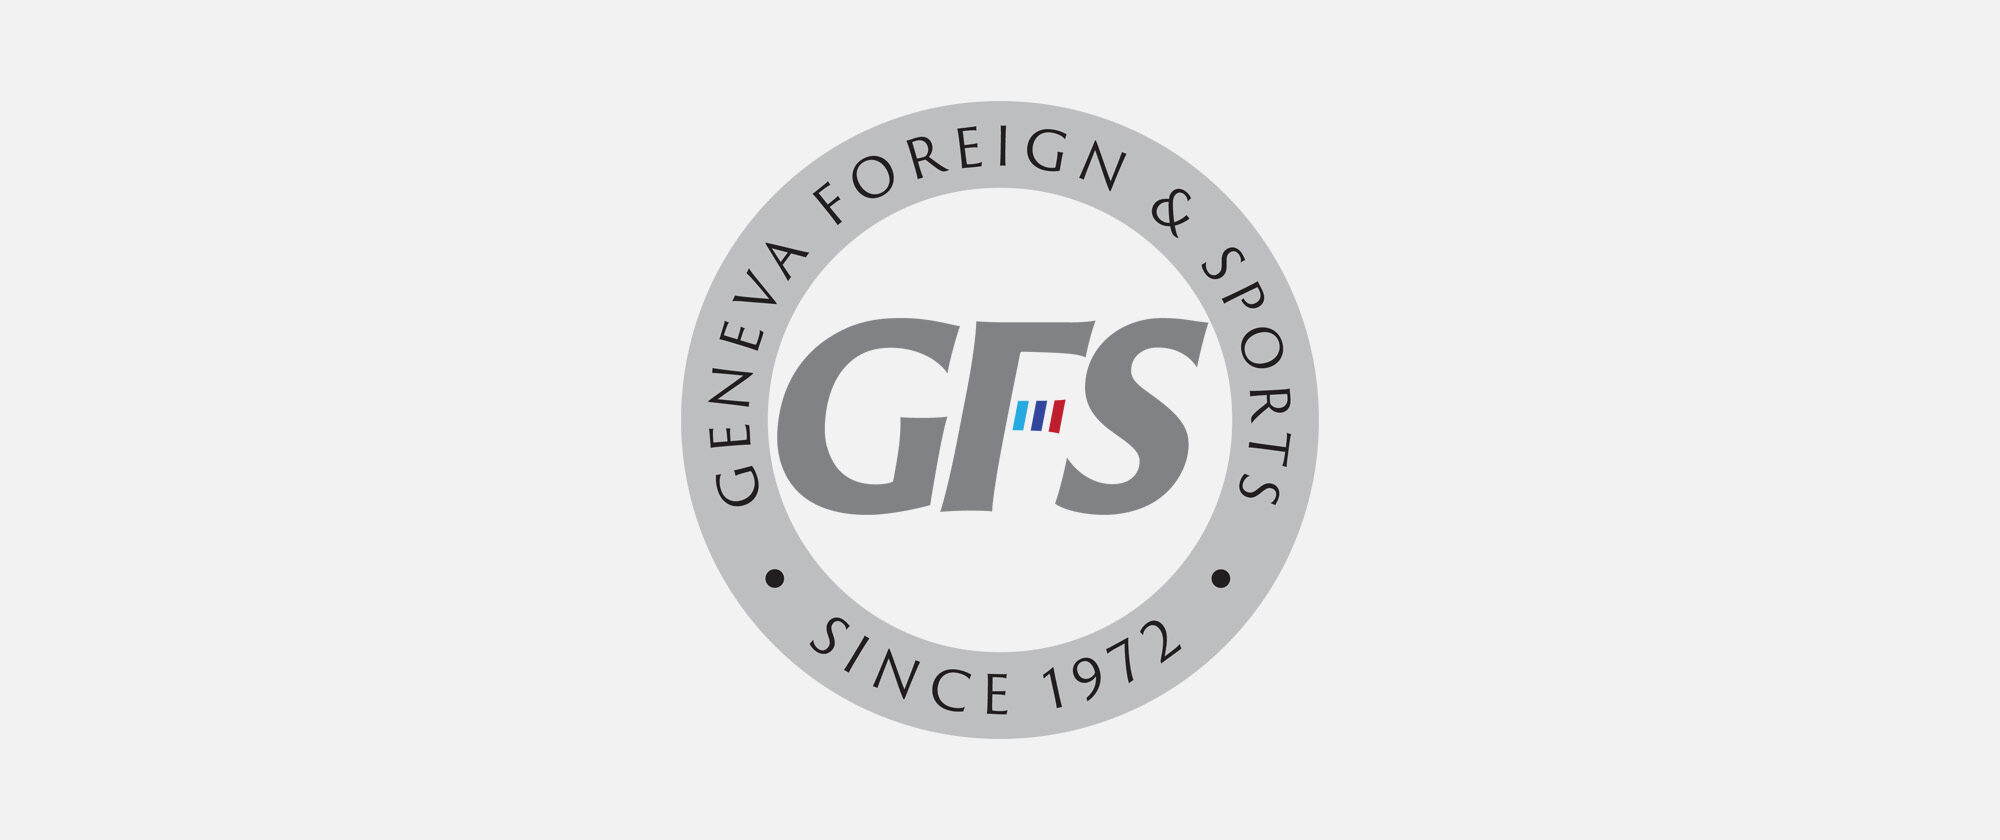 Geneva Foreign And Sports Circle Logo Home Page